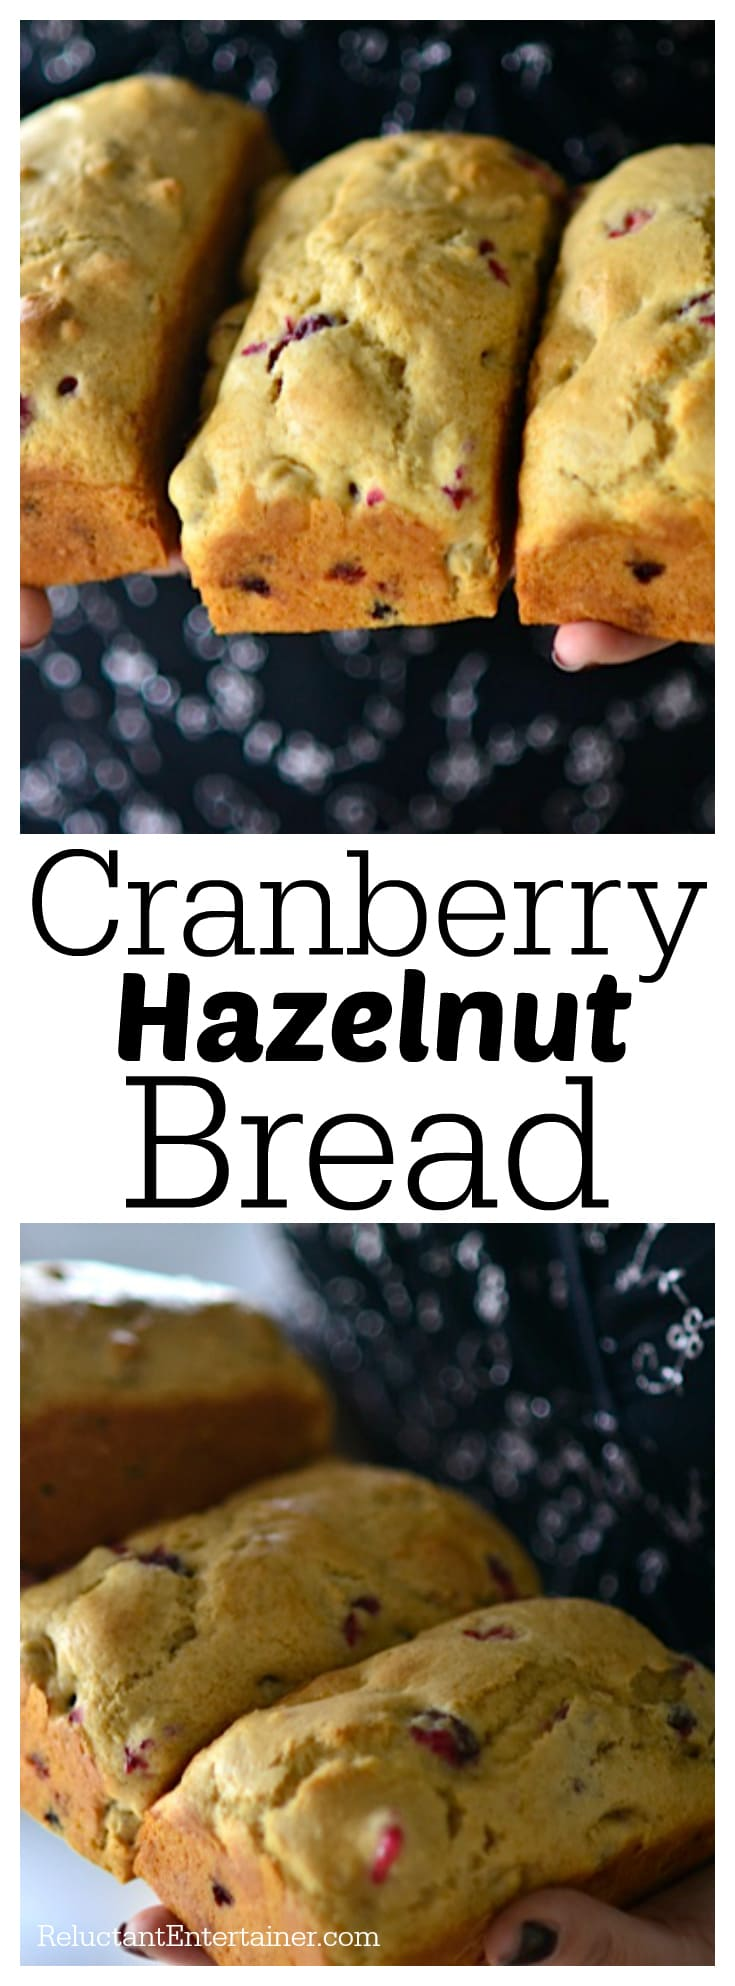 Cranberry Hazelnut Bread Recipe